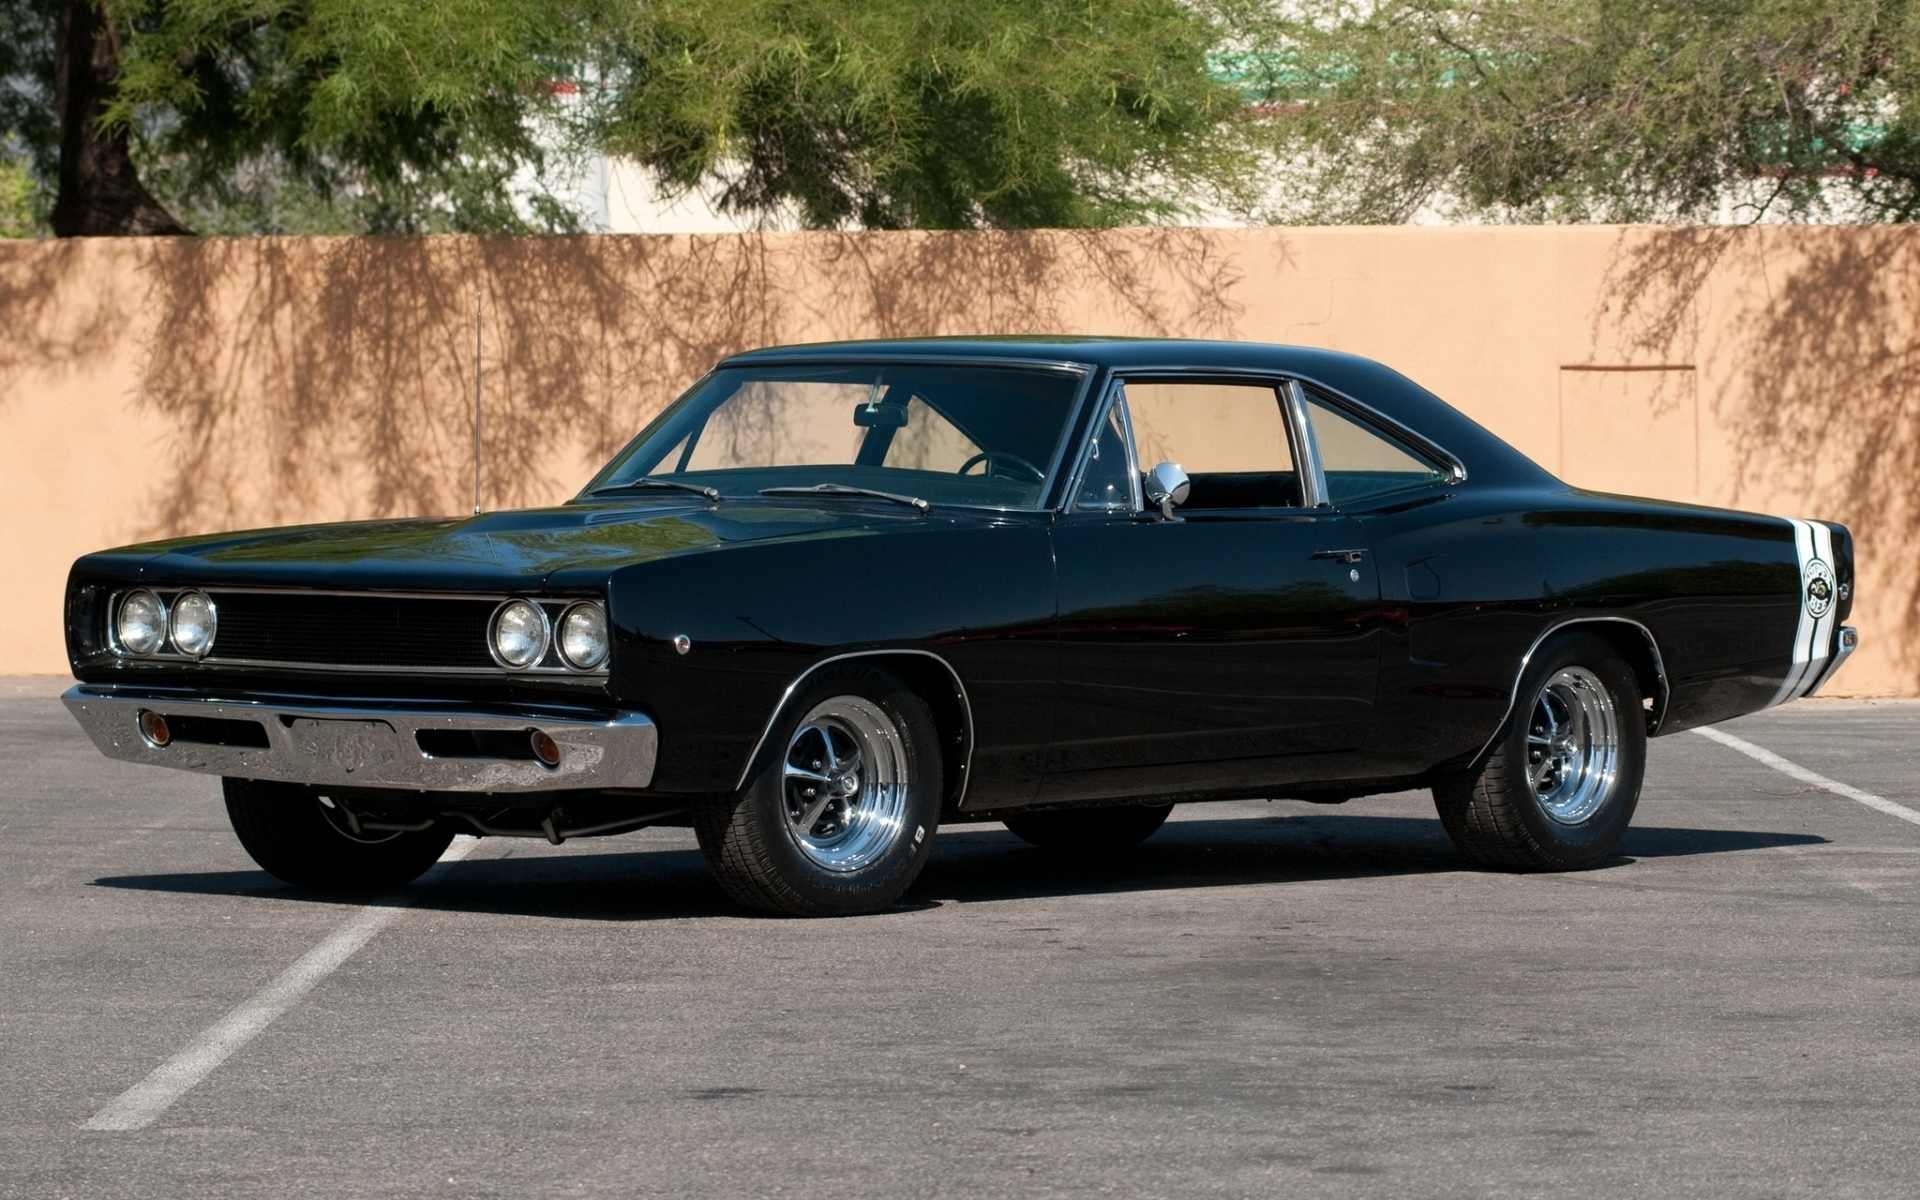 1968 Dodge Charger Super Bee muscle cars wallpaper | 1920x1200 ...